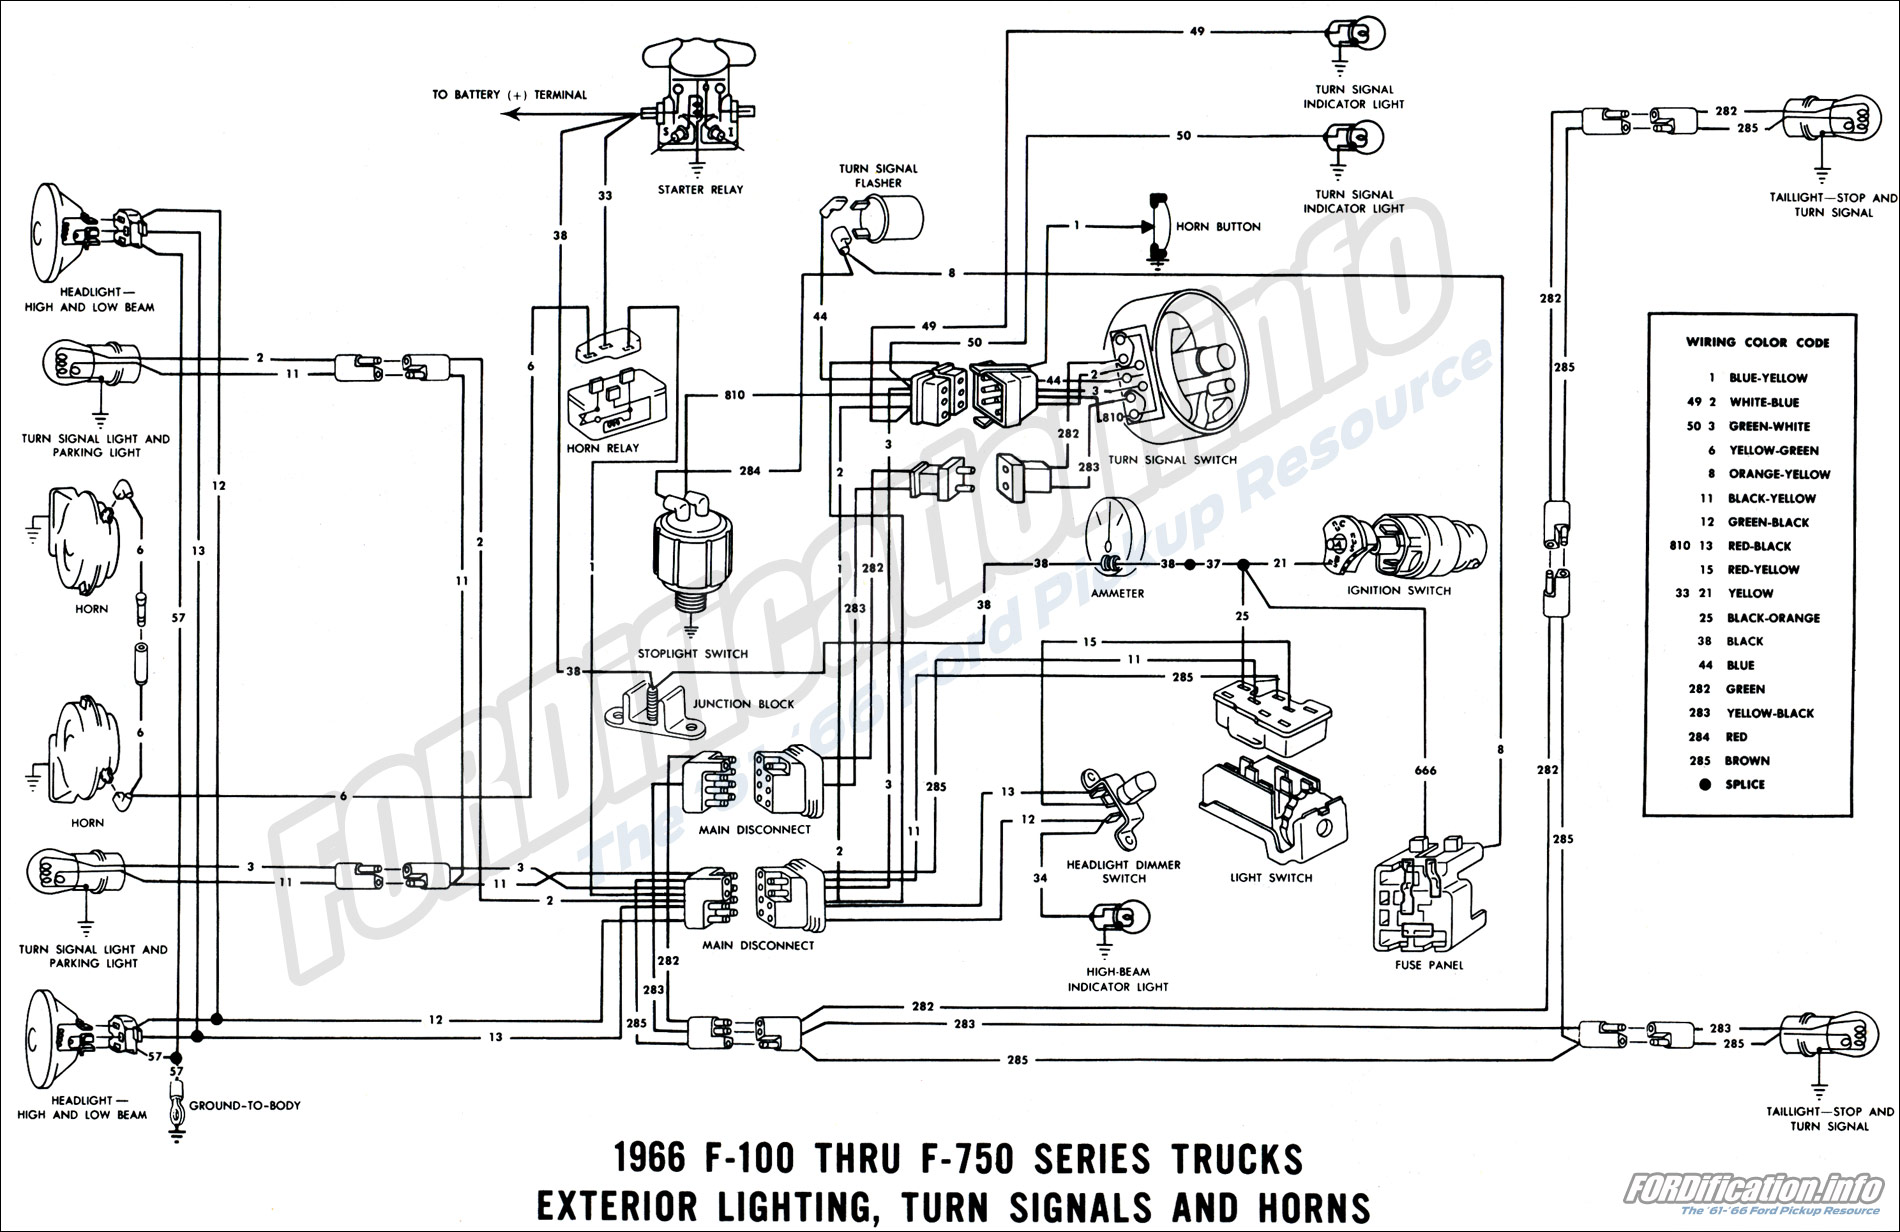 [SCHEMATICS_44OR]  1966 Ford Truck Wiring Diagrams - FORDification.info - The '61-'66 Ford  Pickup Resource | 1966 Ford F100 Blinker Switch Wiring |  | FORDification.info